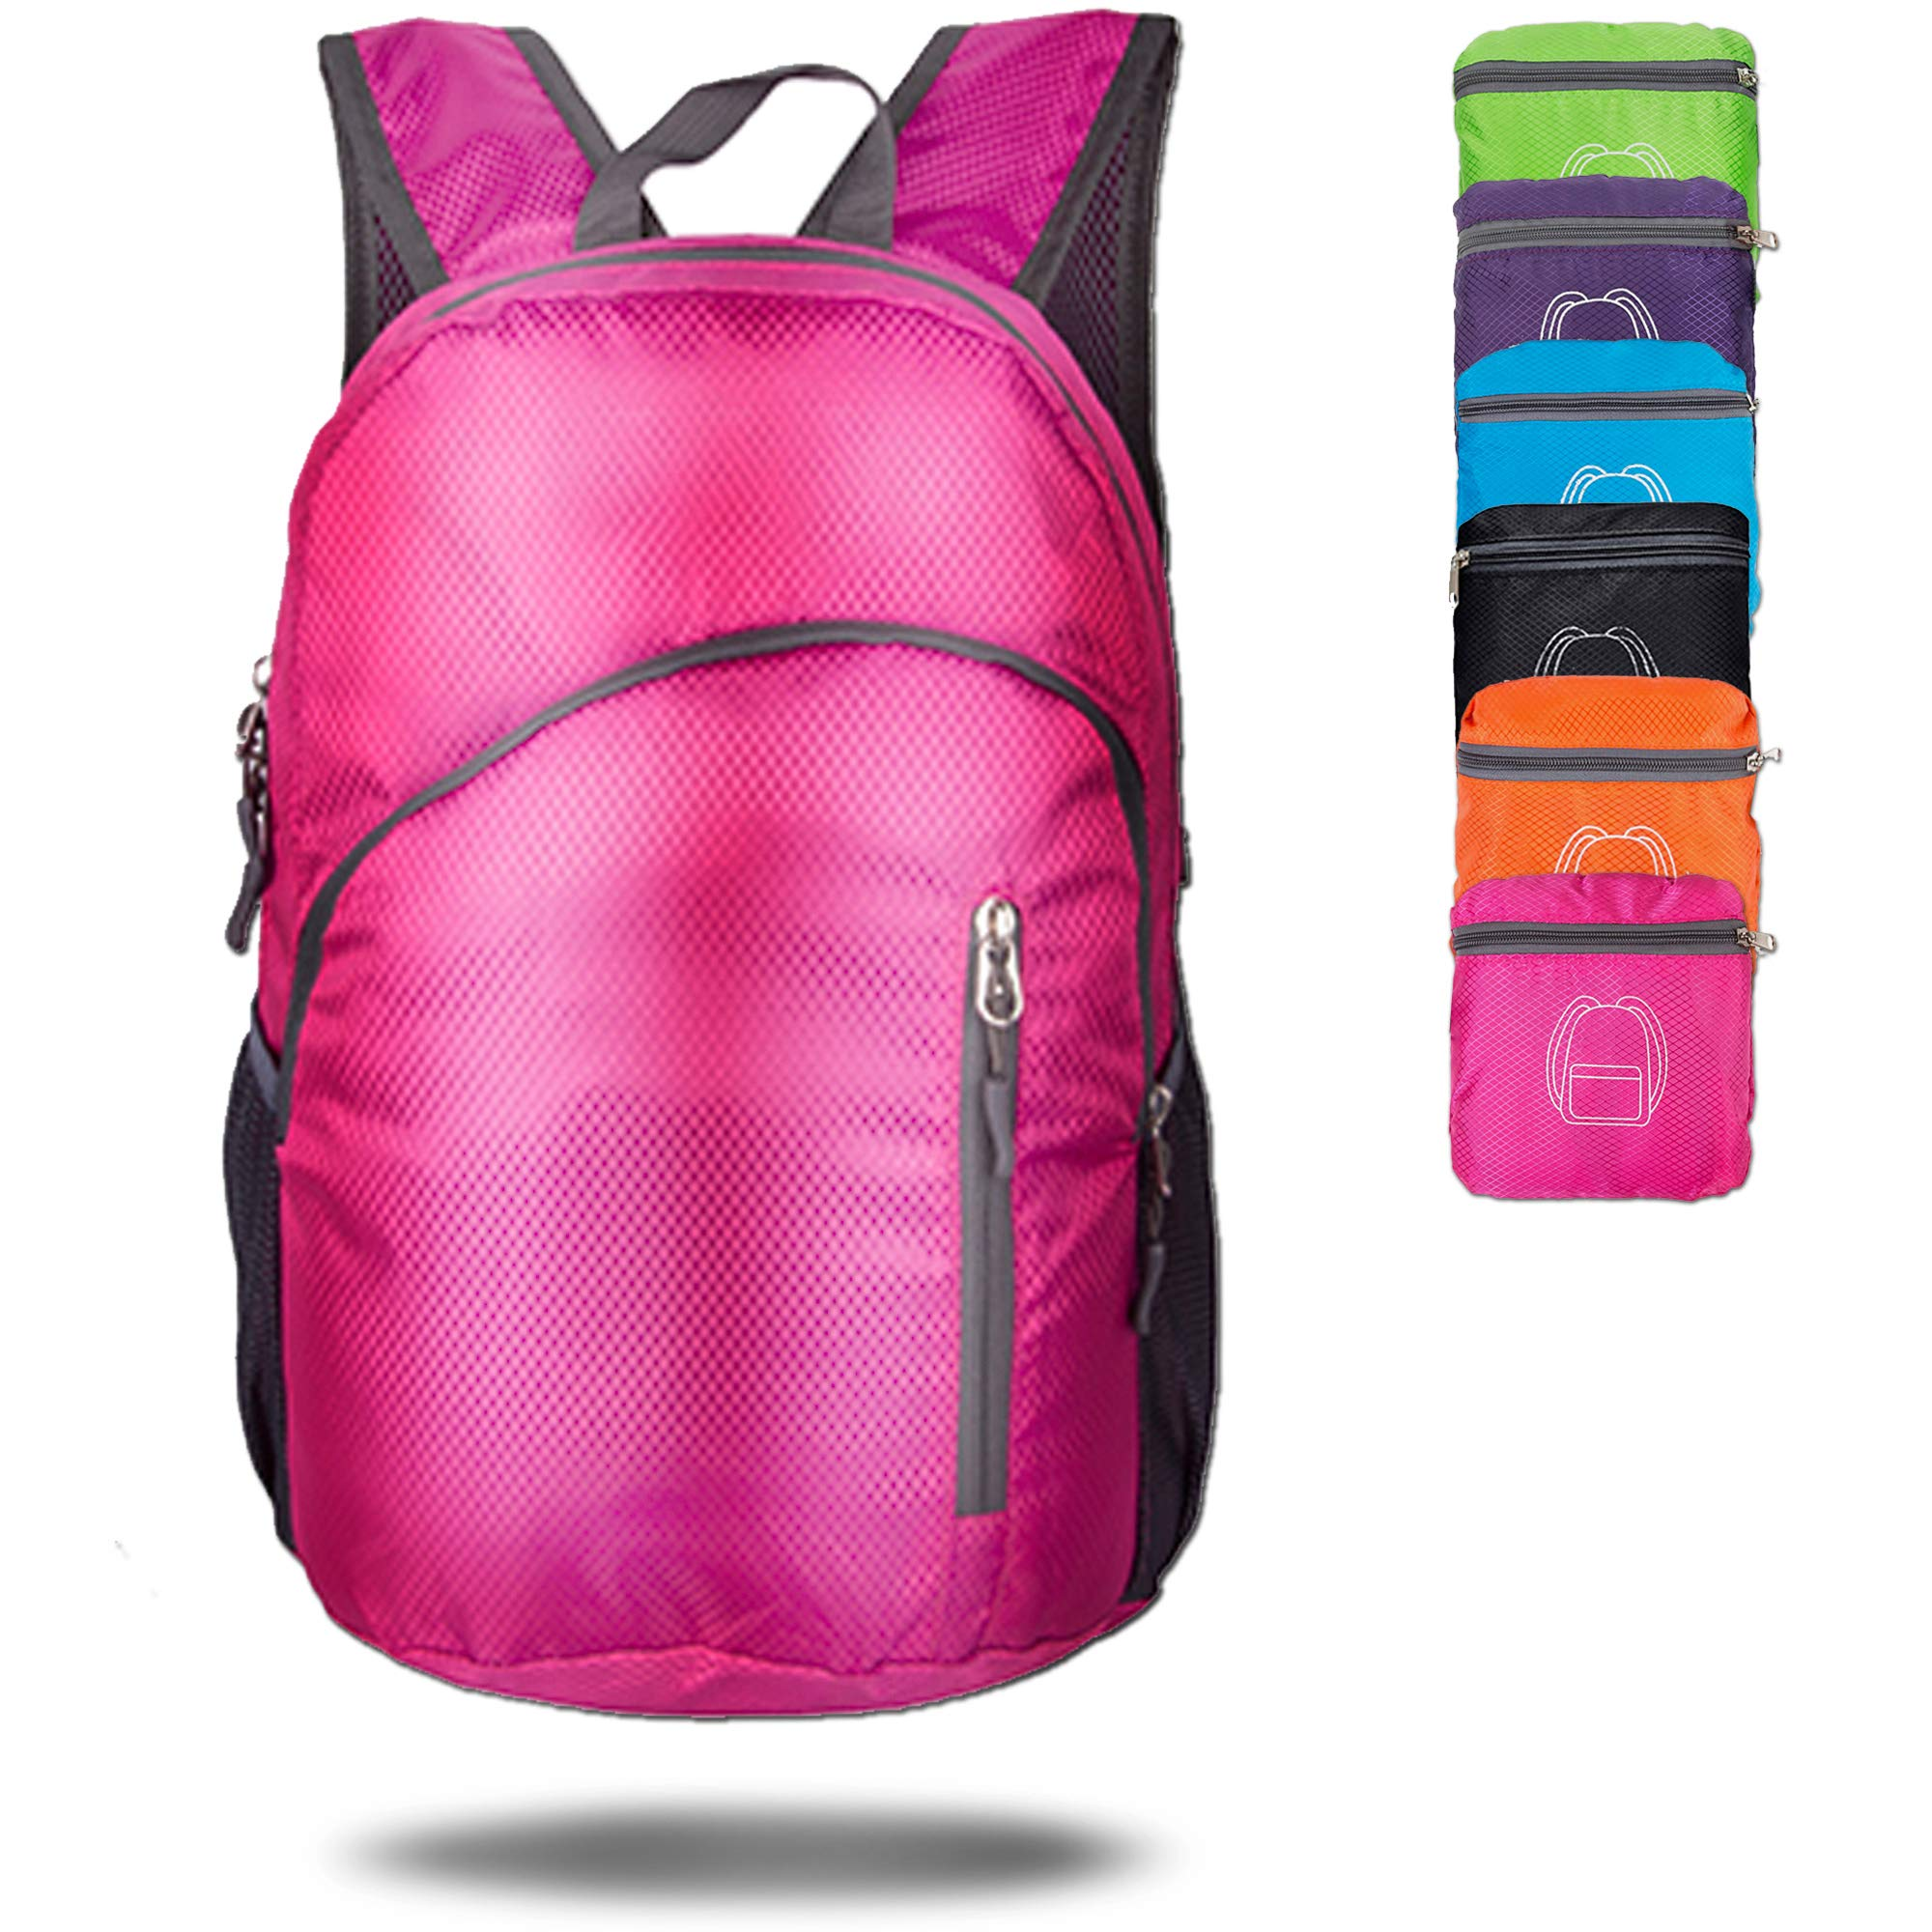 MODARANI Small 20L Rose Red Foldable Travel Daypack Packable Backpack for Women Hiking Camping Beach Outing